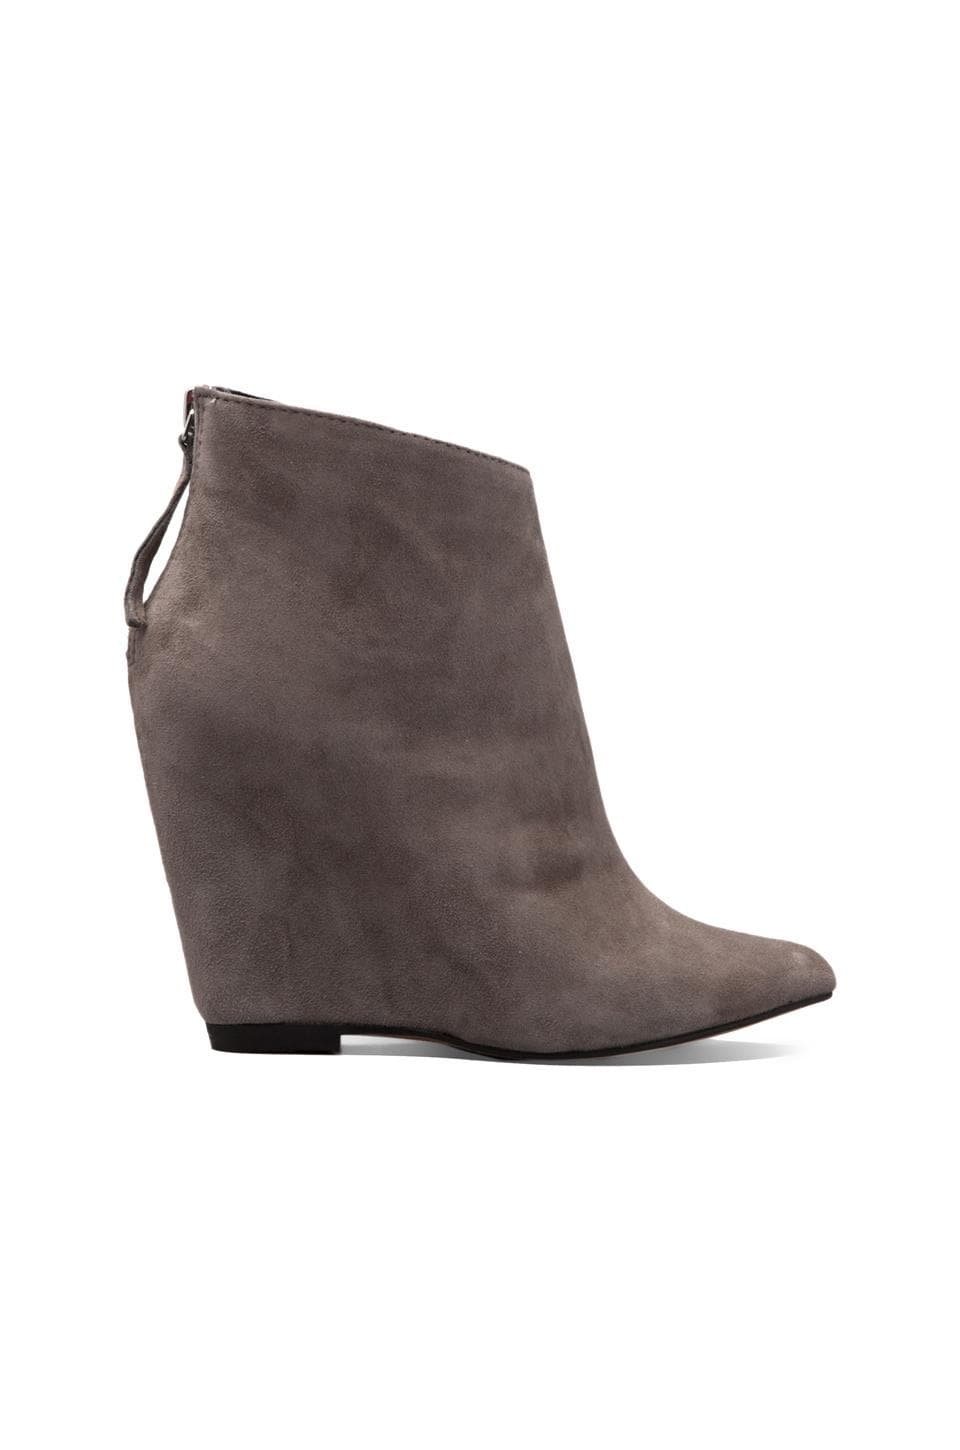 Dolce Vita Beryl Bootie in Taupe